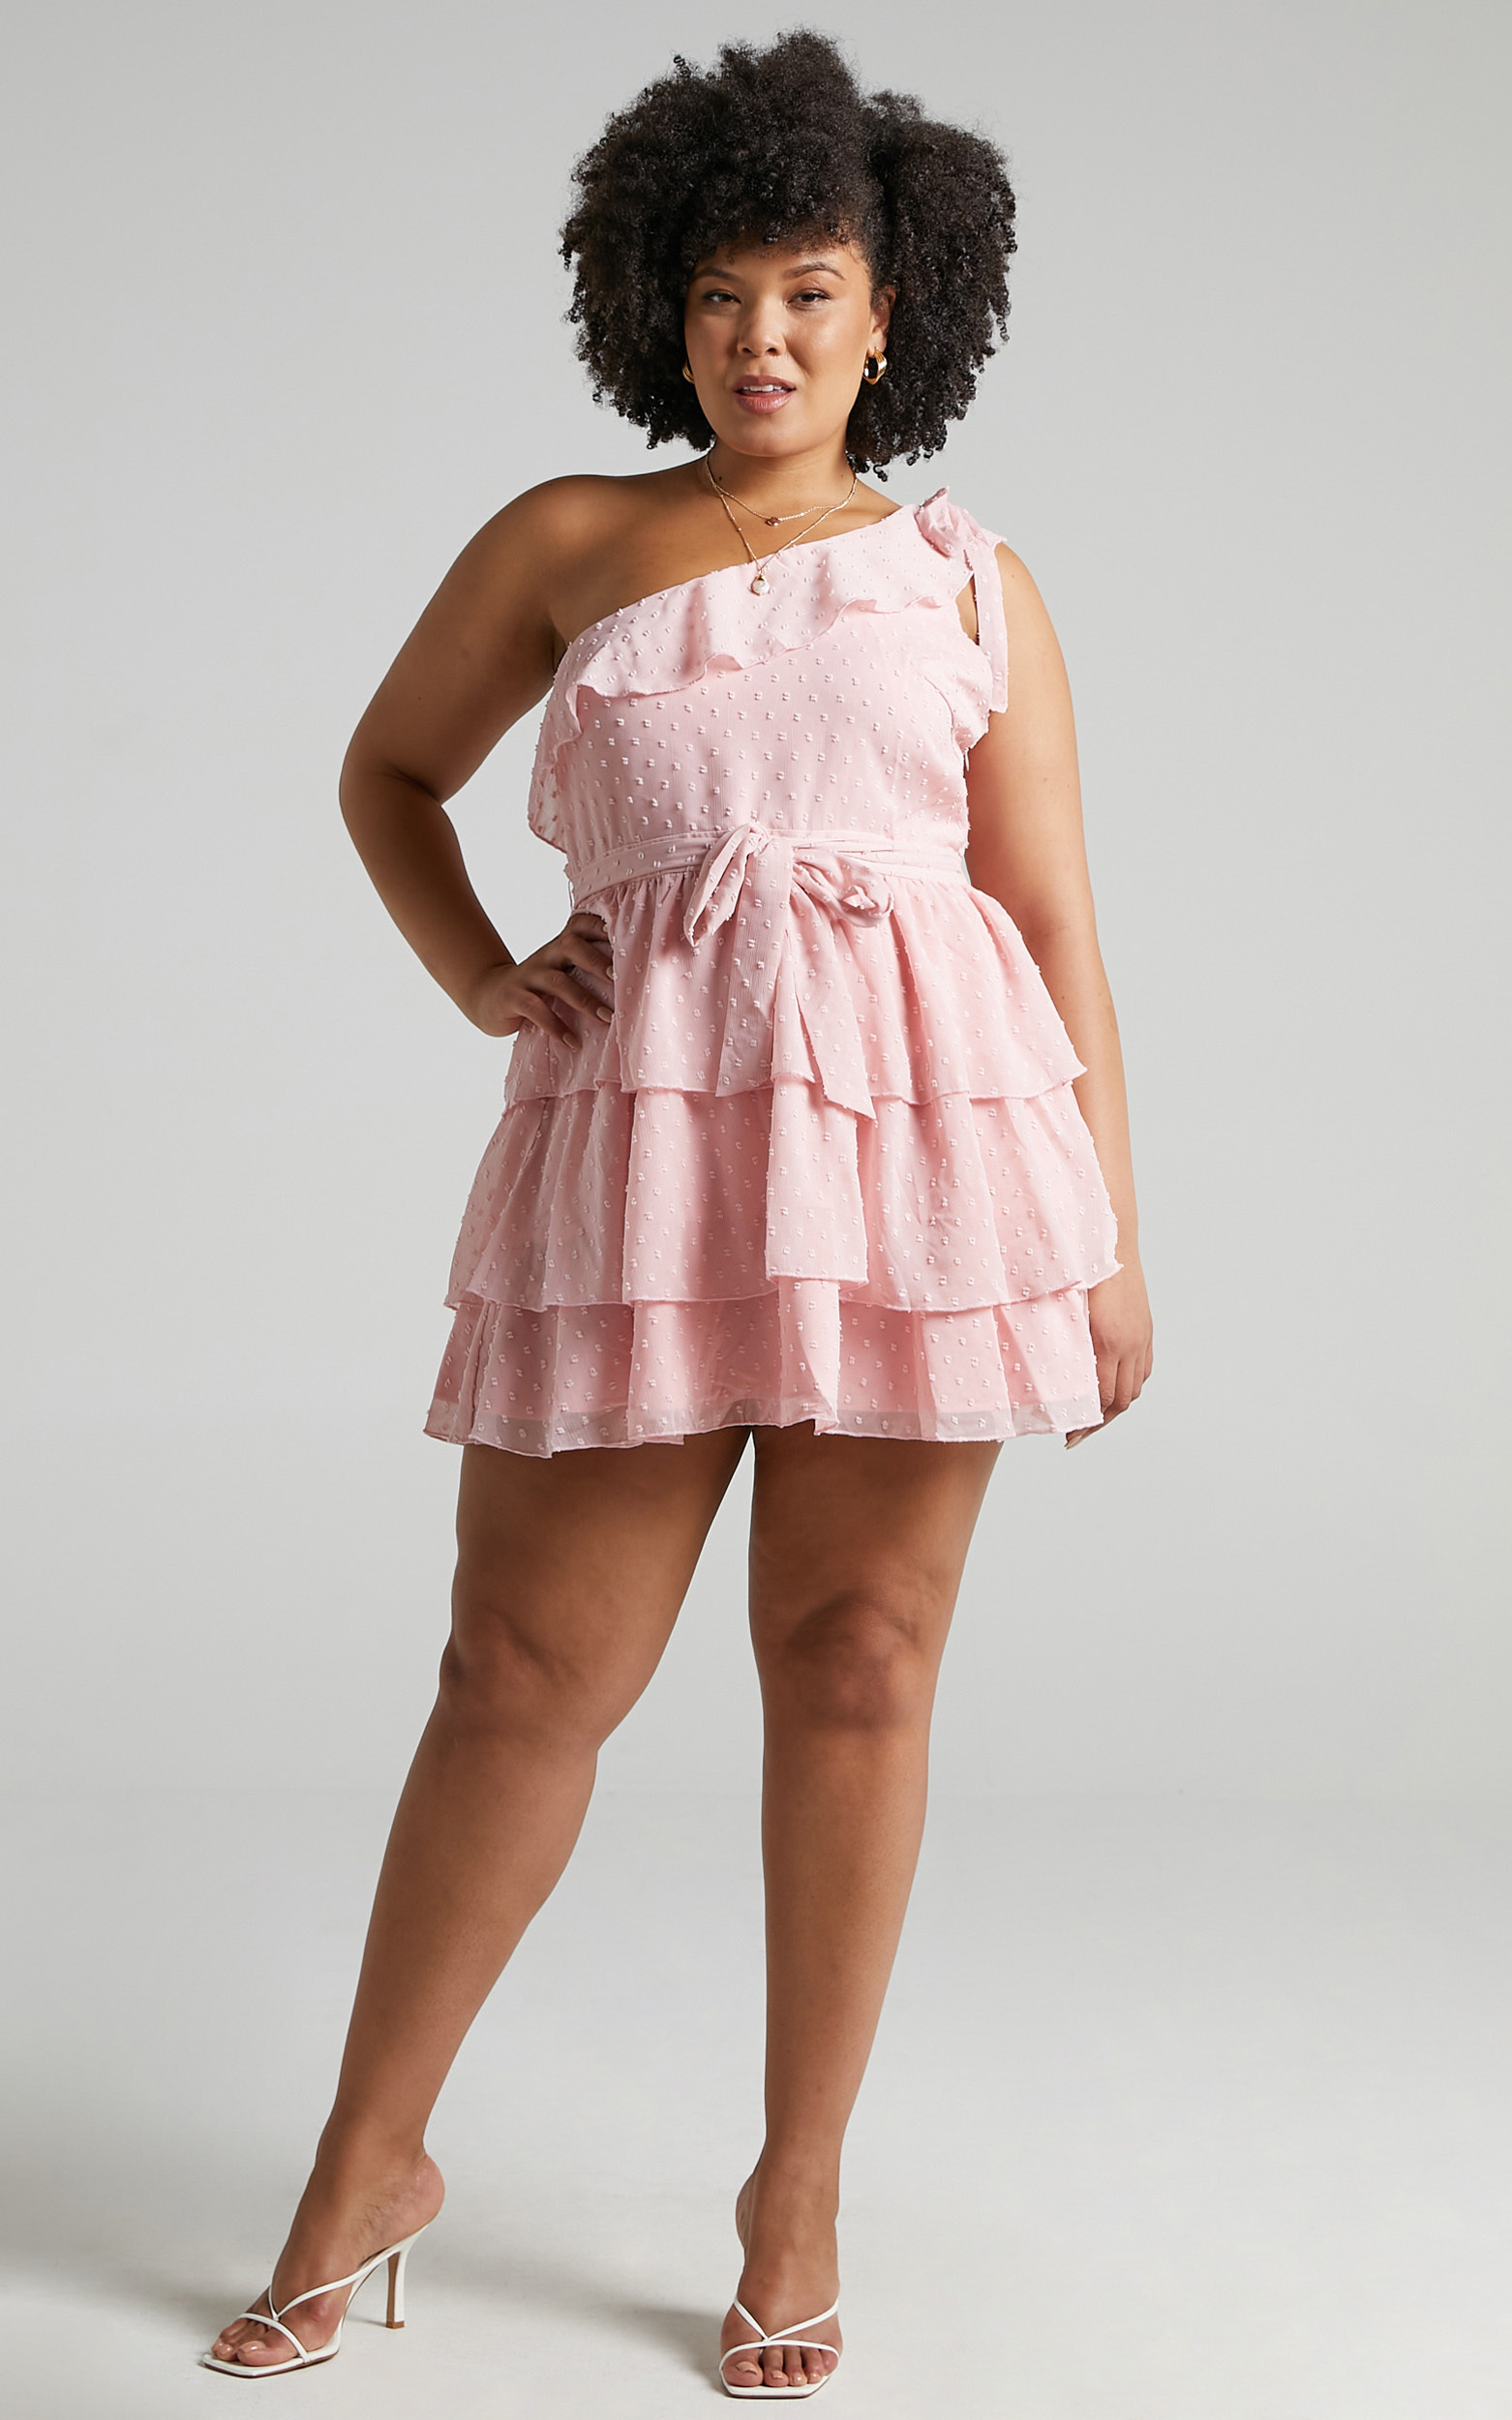 Darling I Am A Daydream Dress in Blush - 20, PNK3, hi-res image number null